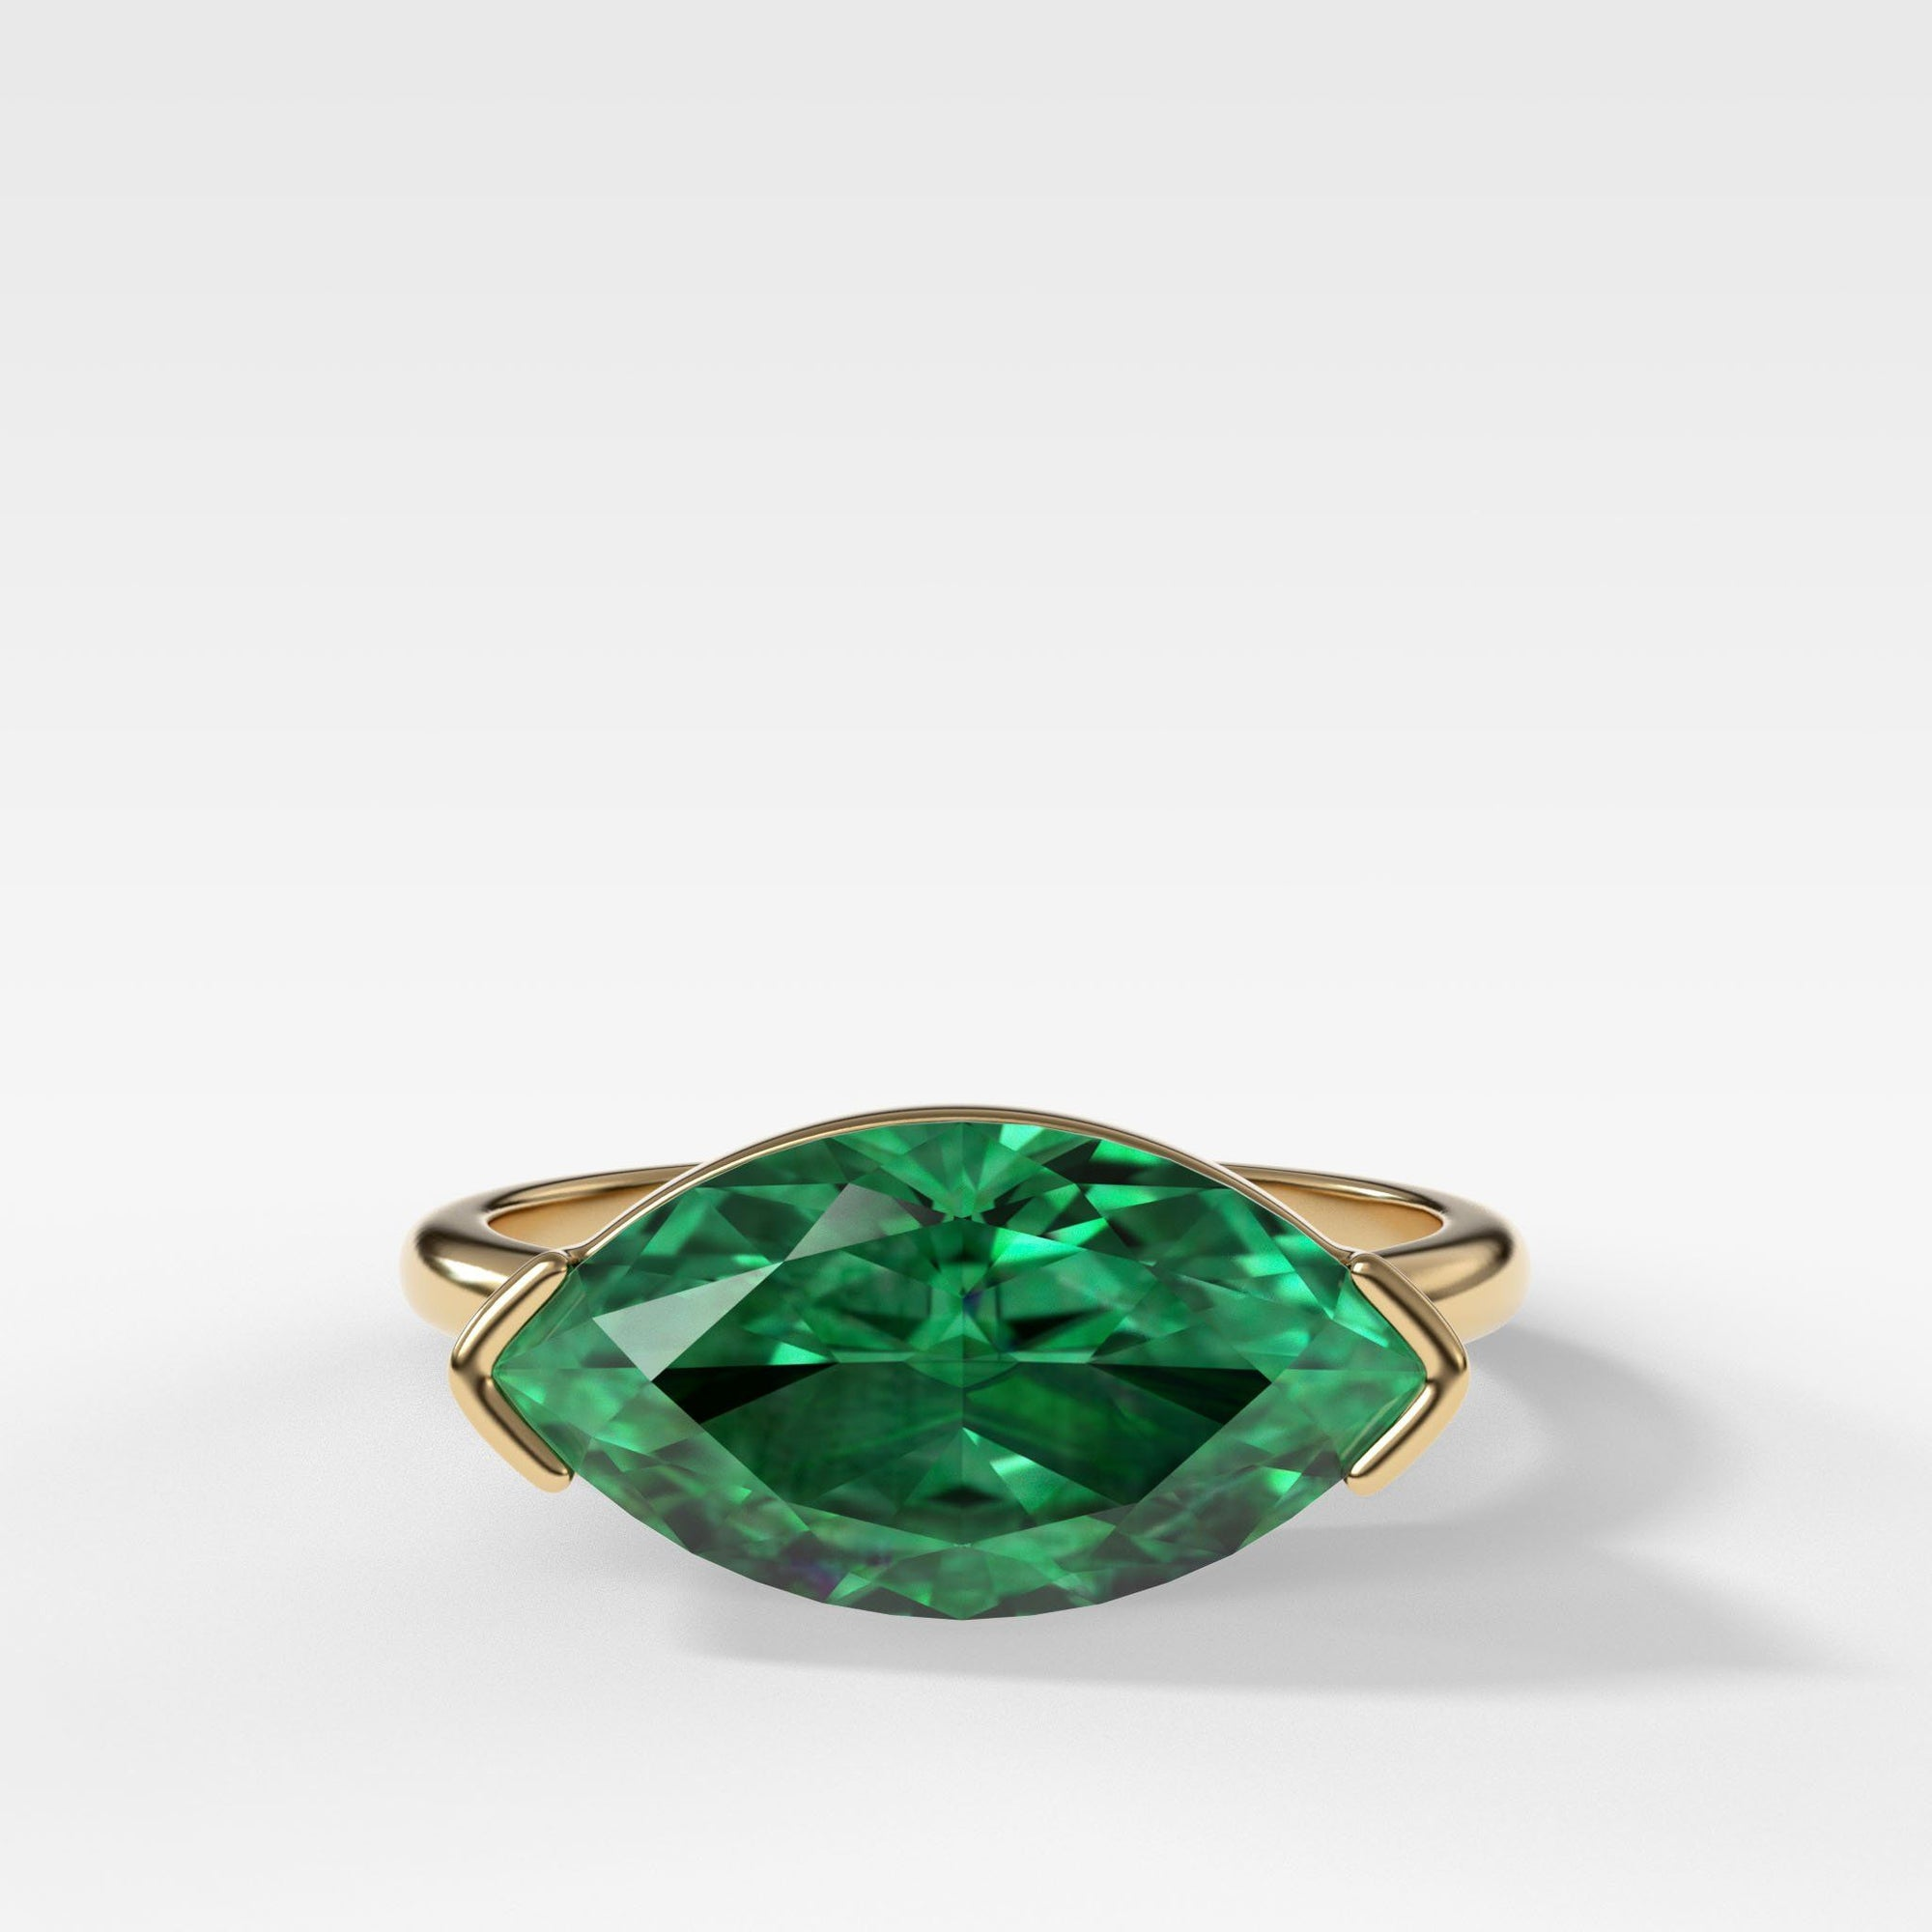 East West Half Bezel Solitaire Engagement Ring With Green Emerald Marquise Cut In Yellow Gold By Good Stone